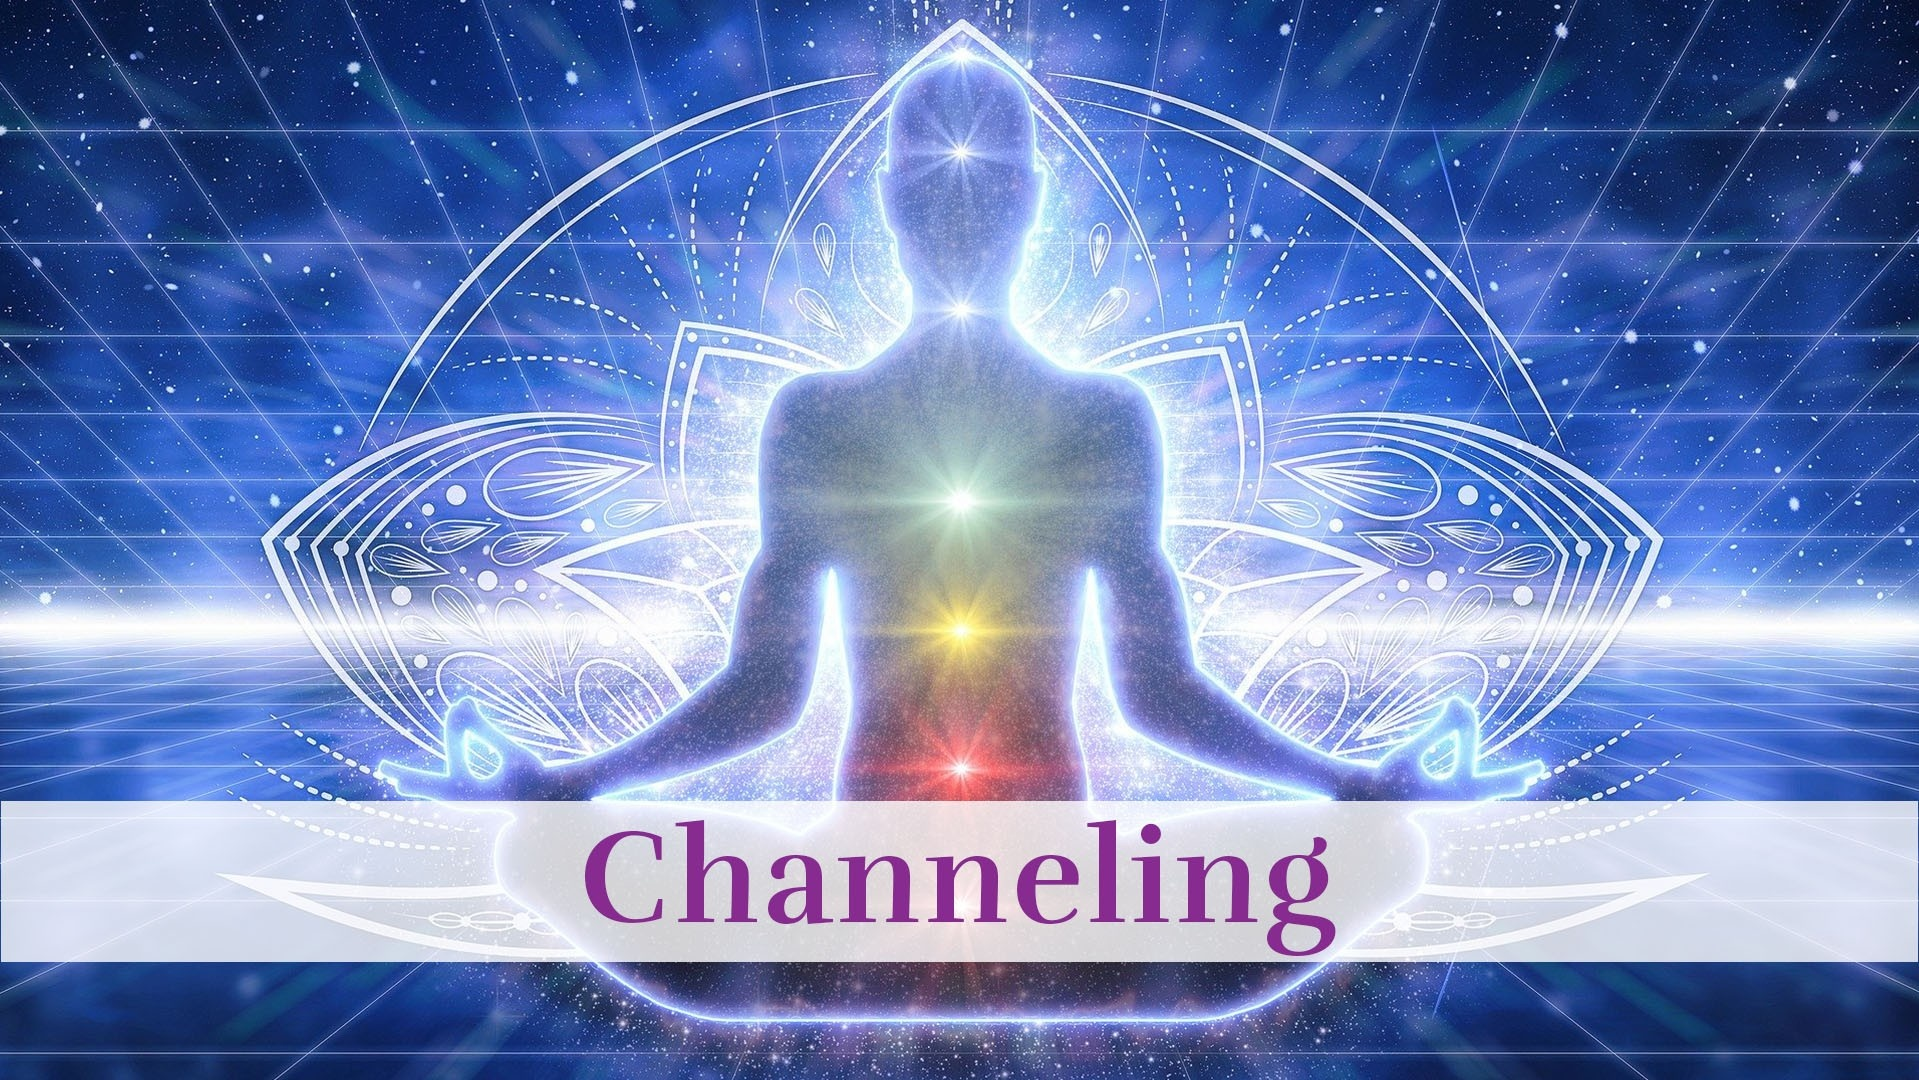 Channeling The Council Of Twelve for quantum leaps forward in life.